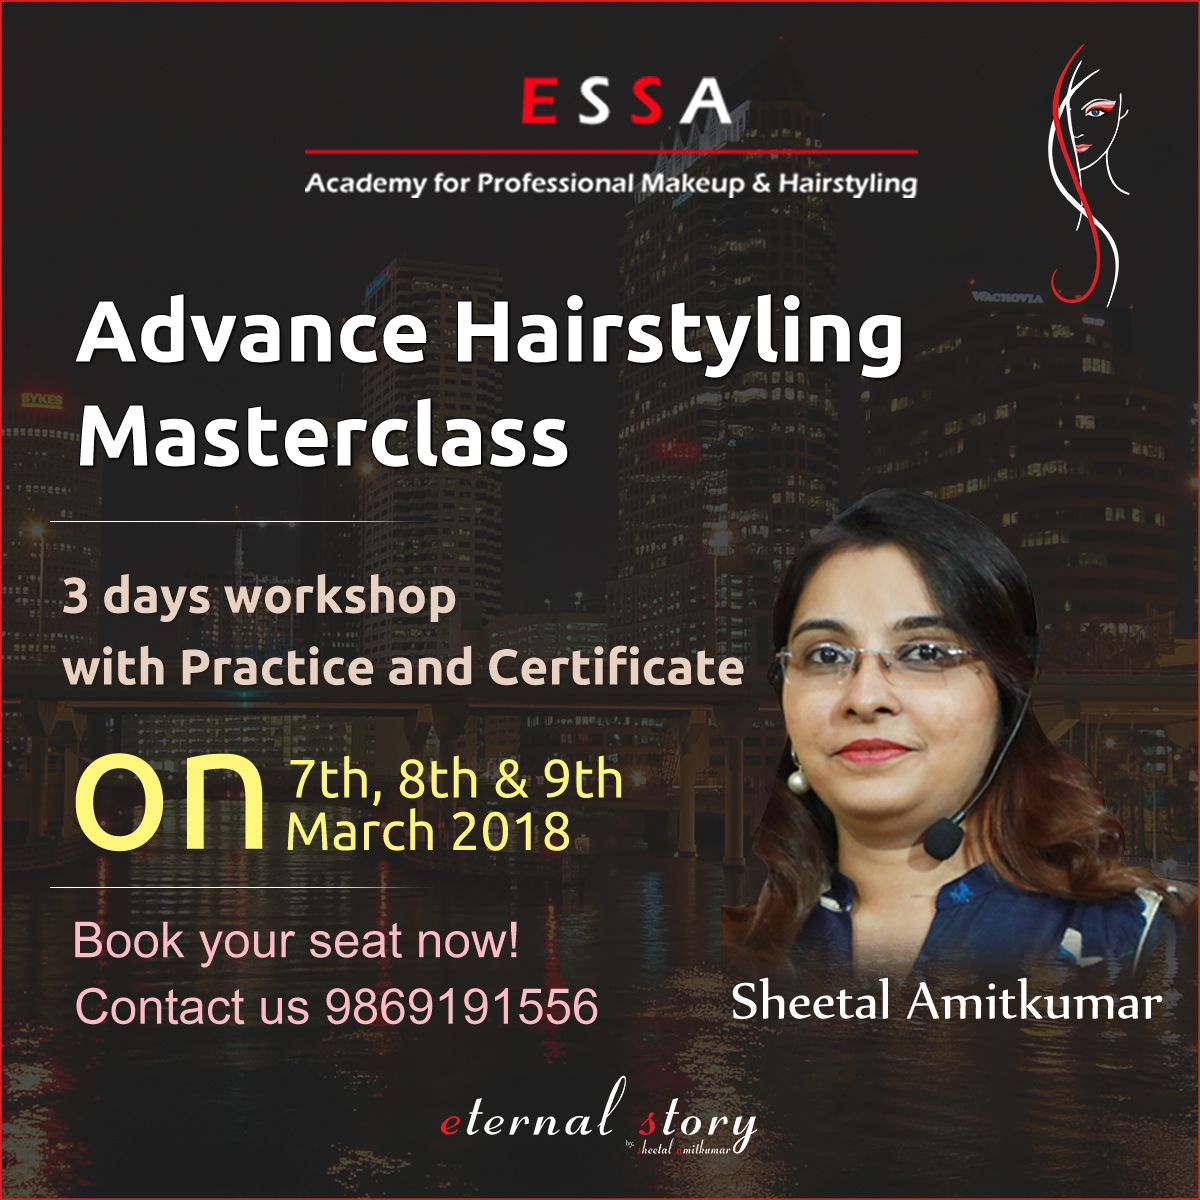 Advance Hairstyling Masterclass With Sheetal Amitkumar Learn Professional Hairstyling Techniques And Know How To Acco Bridal Makeover Master Class Hair Styles